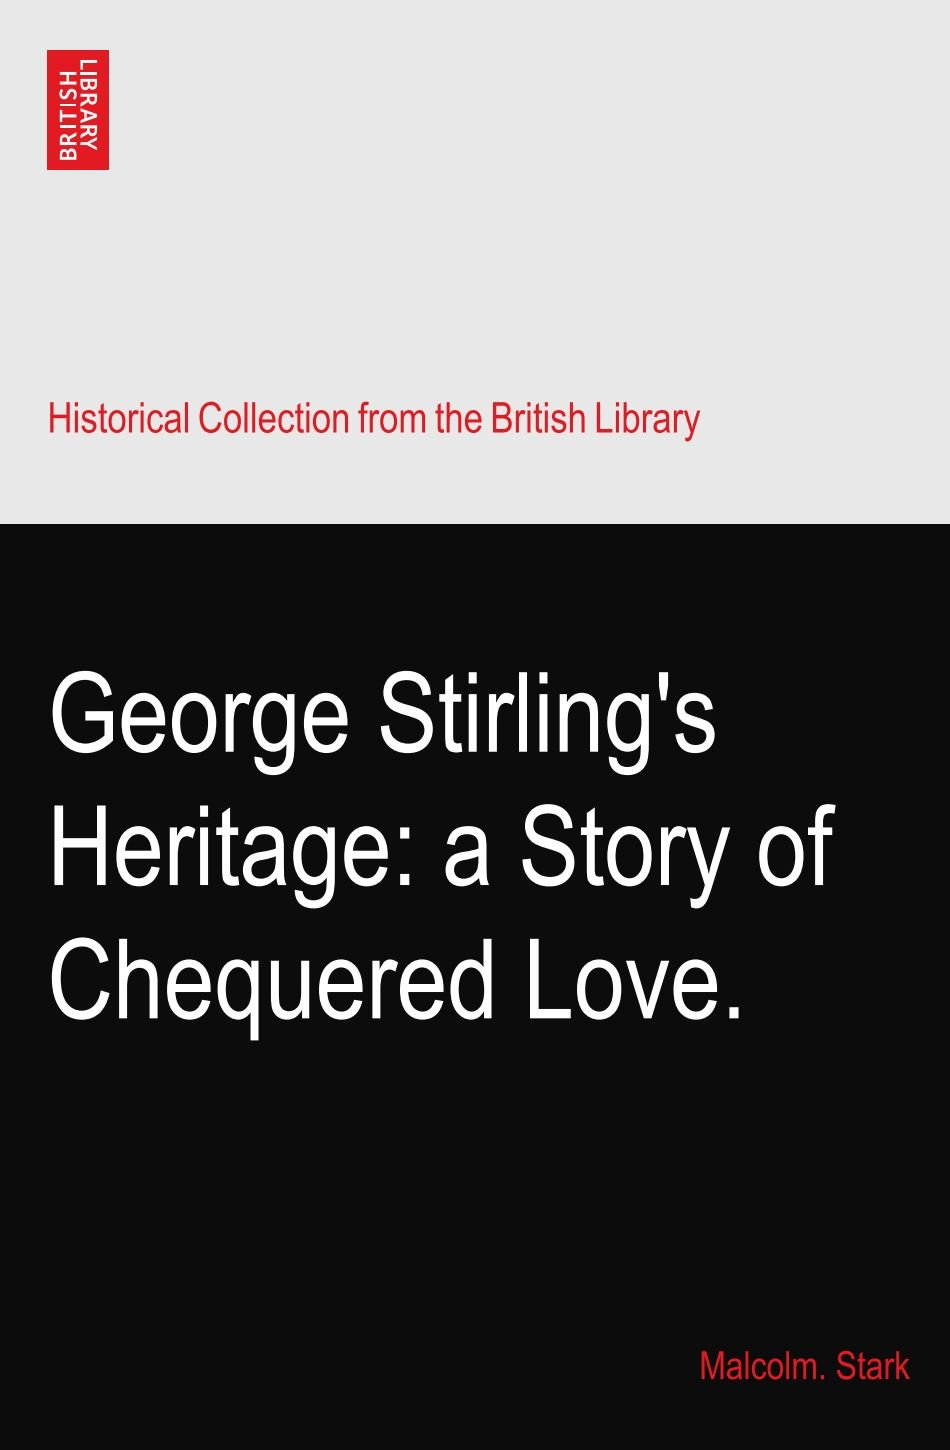 Read Online George Stirling's Heritage: a Story of Chequered Love. pdf